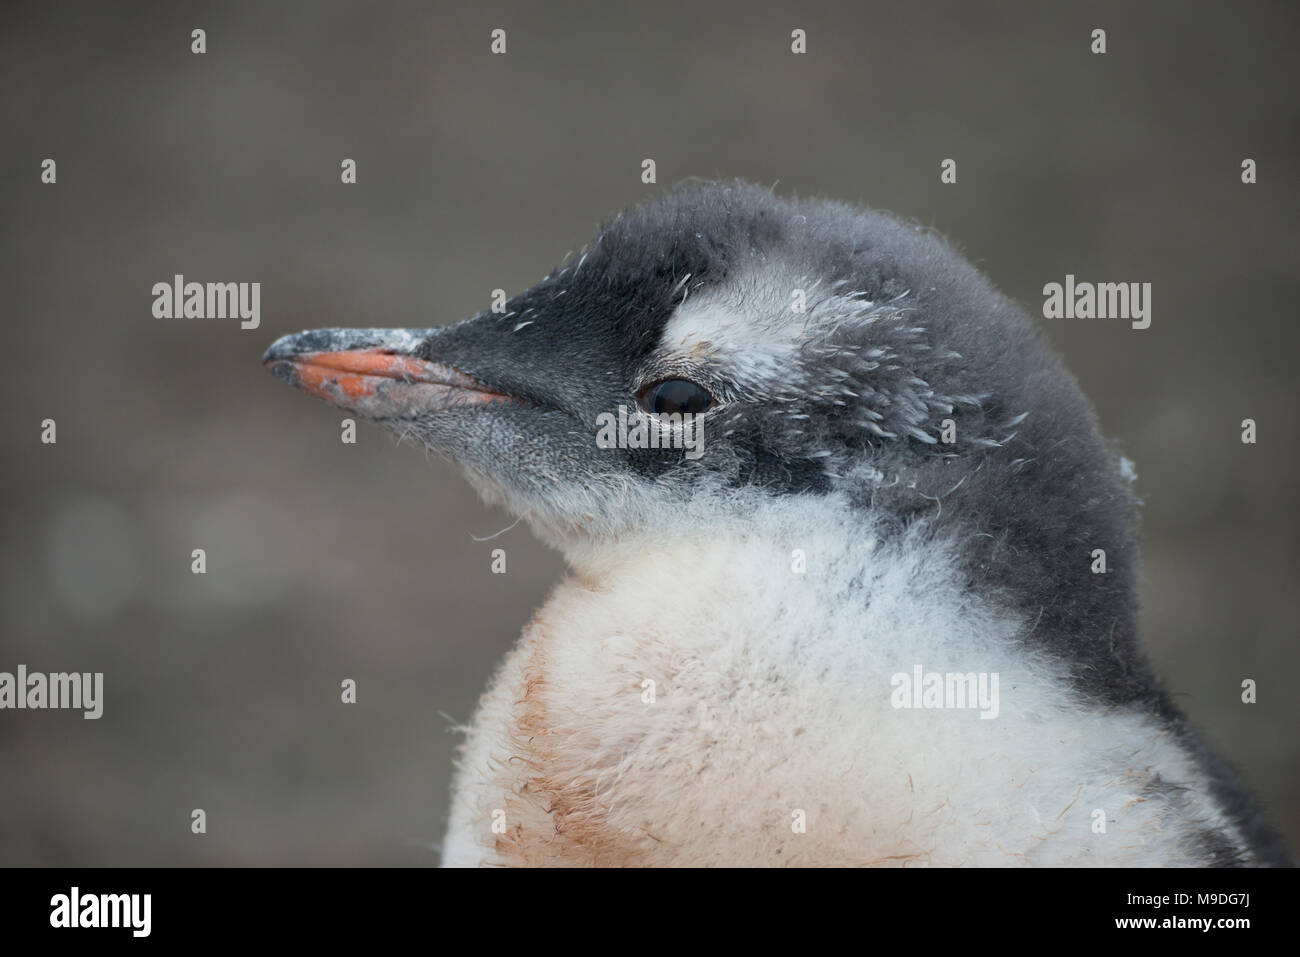 A Gentoo Penguin chick, mid molt motionless on a rocky surface in Antarctica - Stock Image